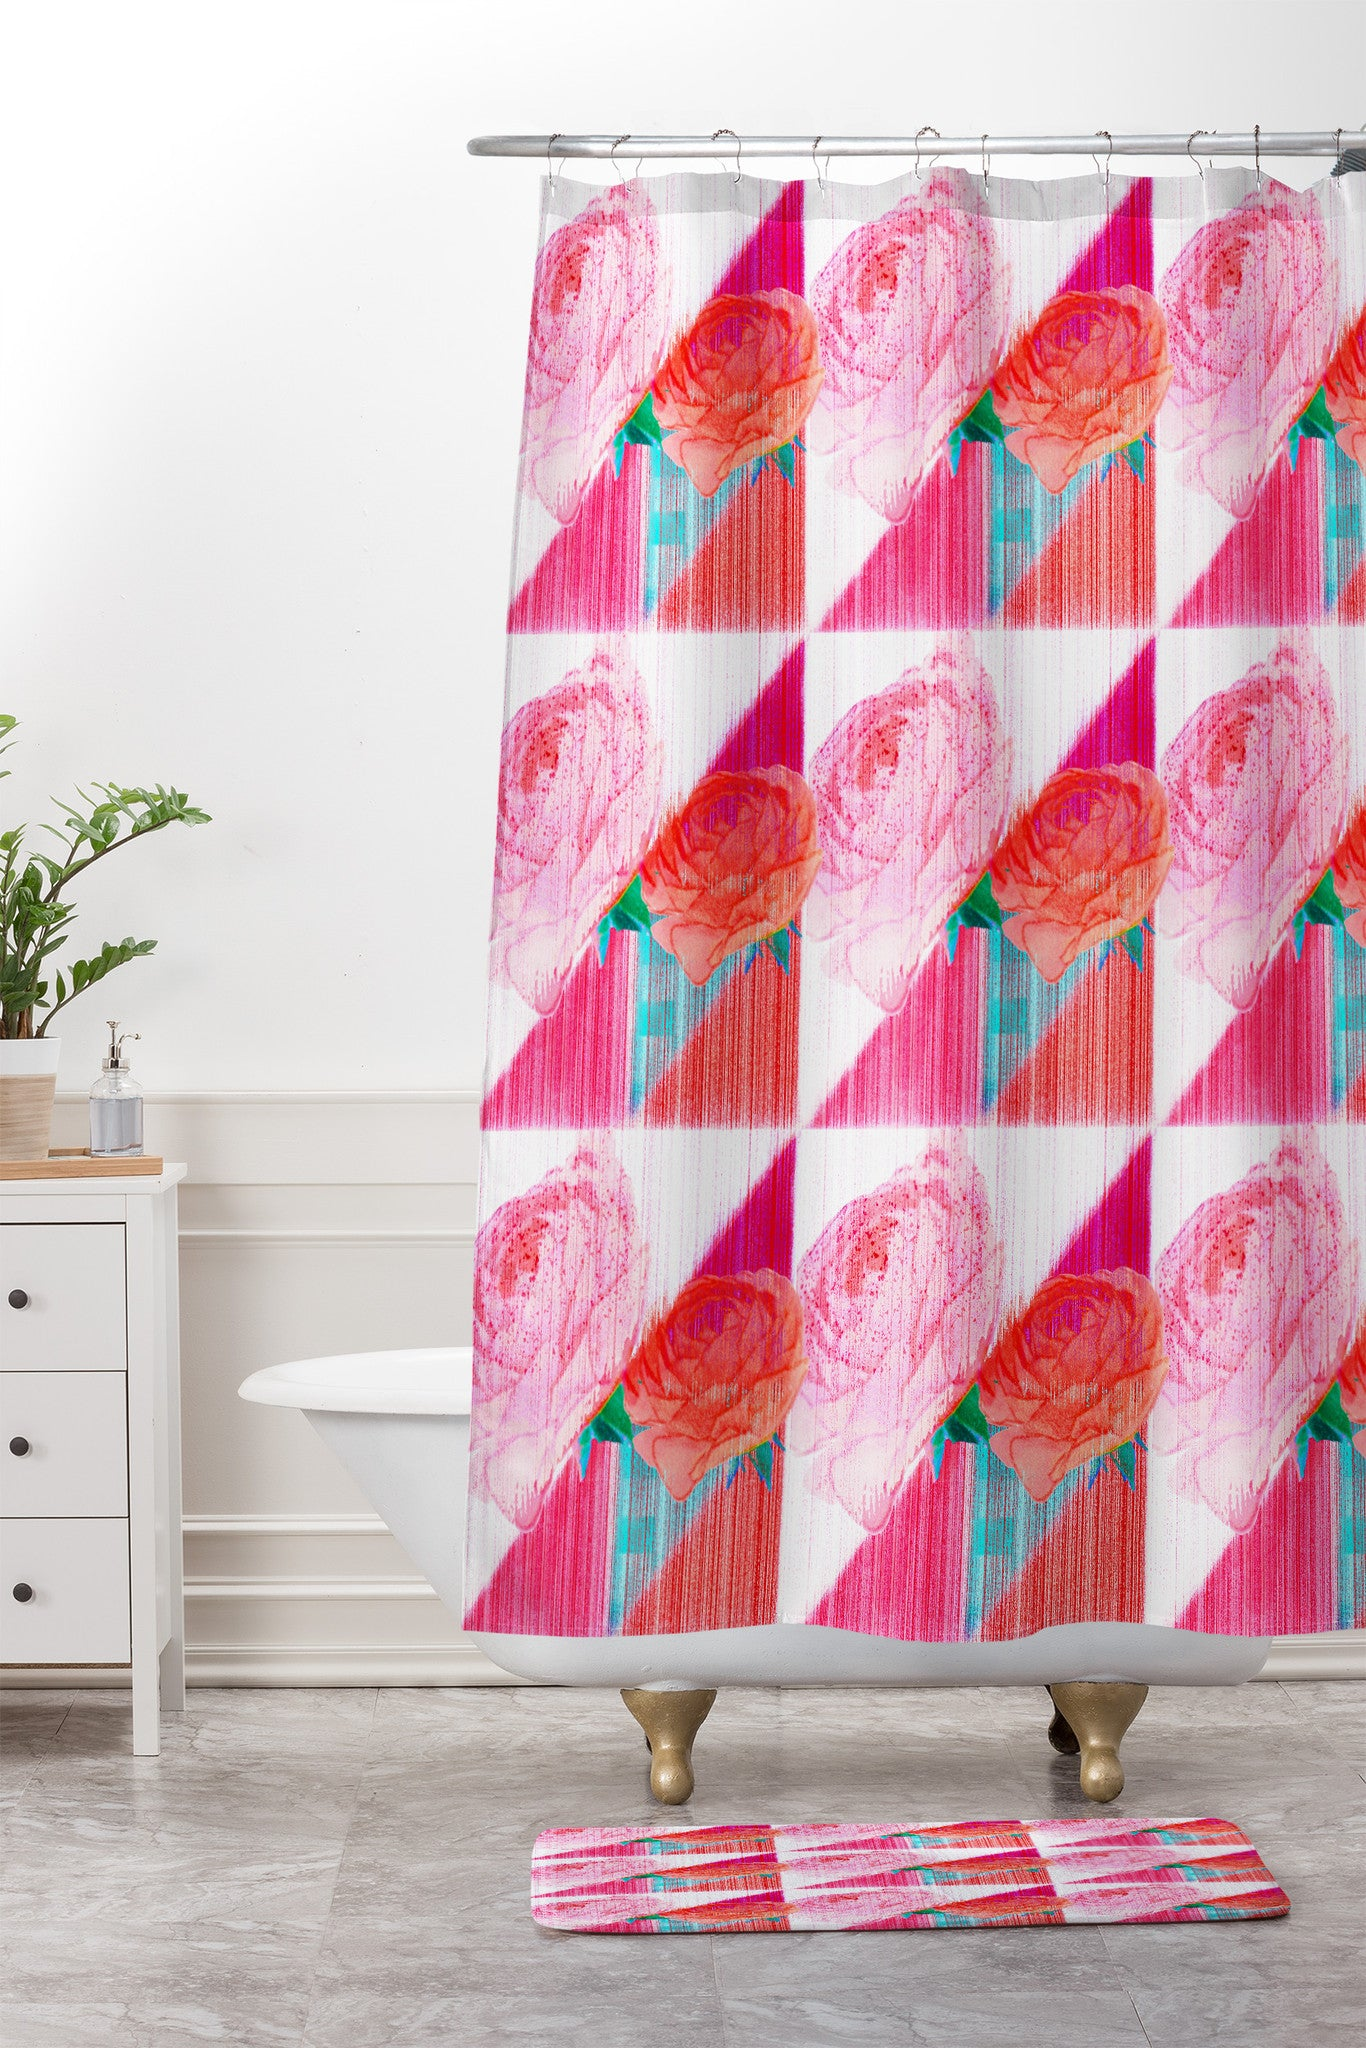 Hadley Hutton Floral Tribe Collection 1 Shower Curtain And Mat